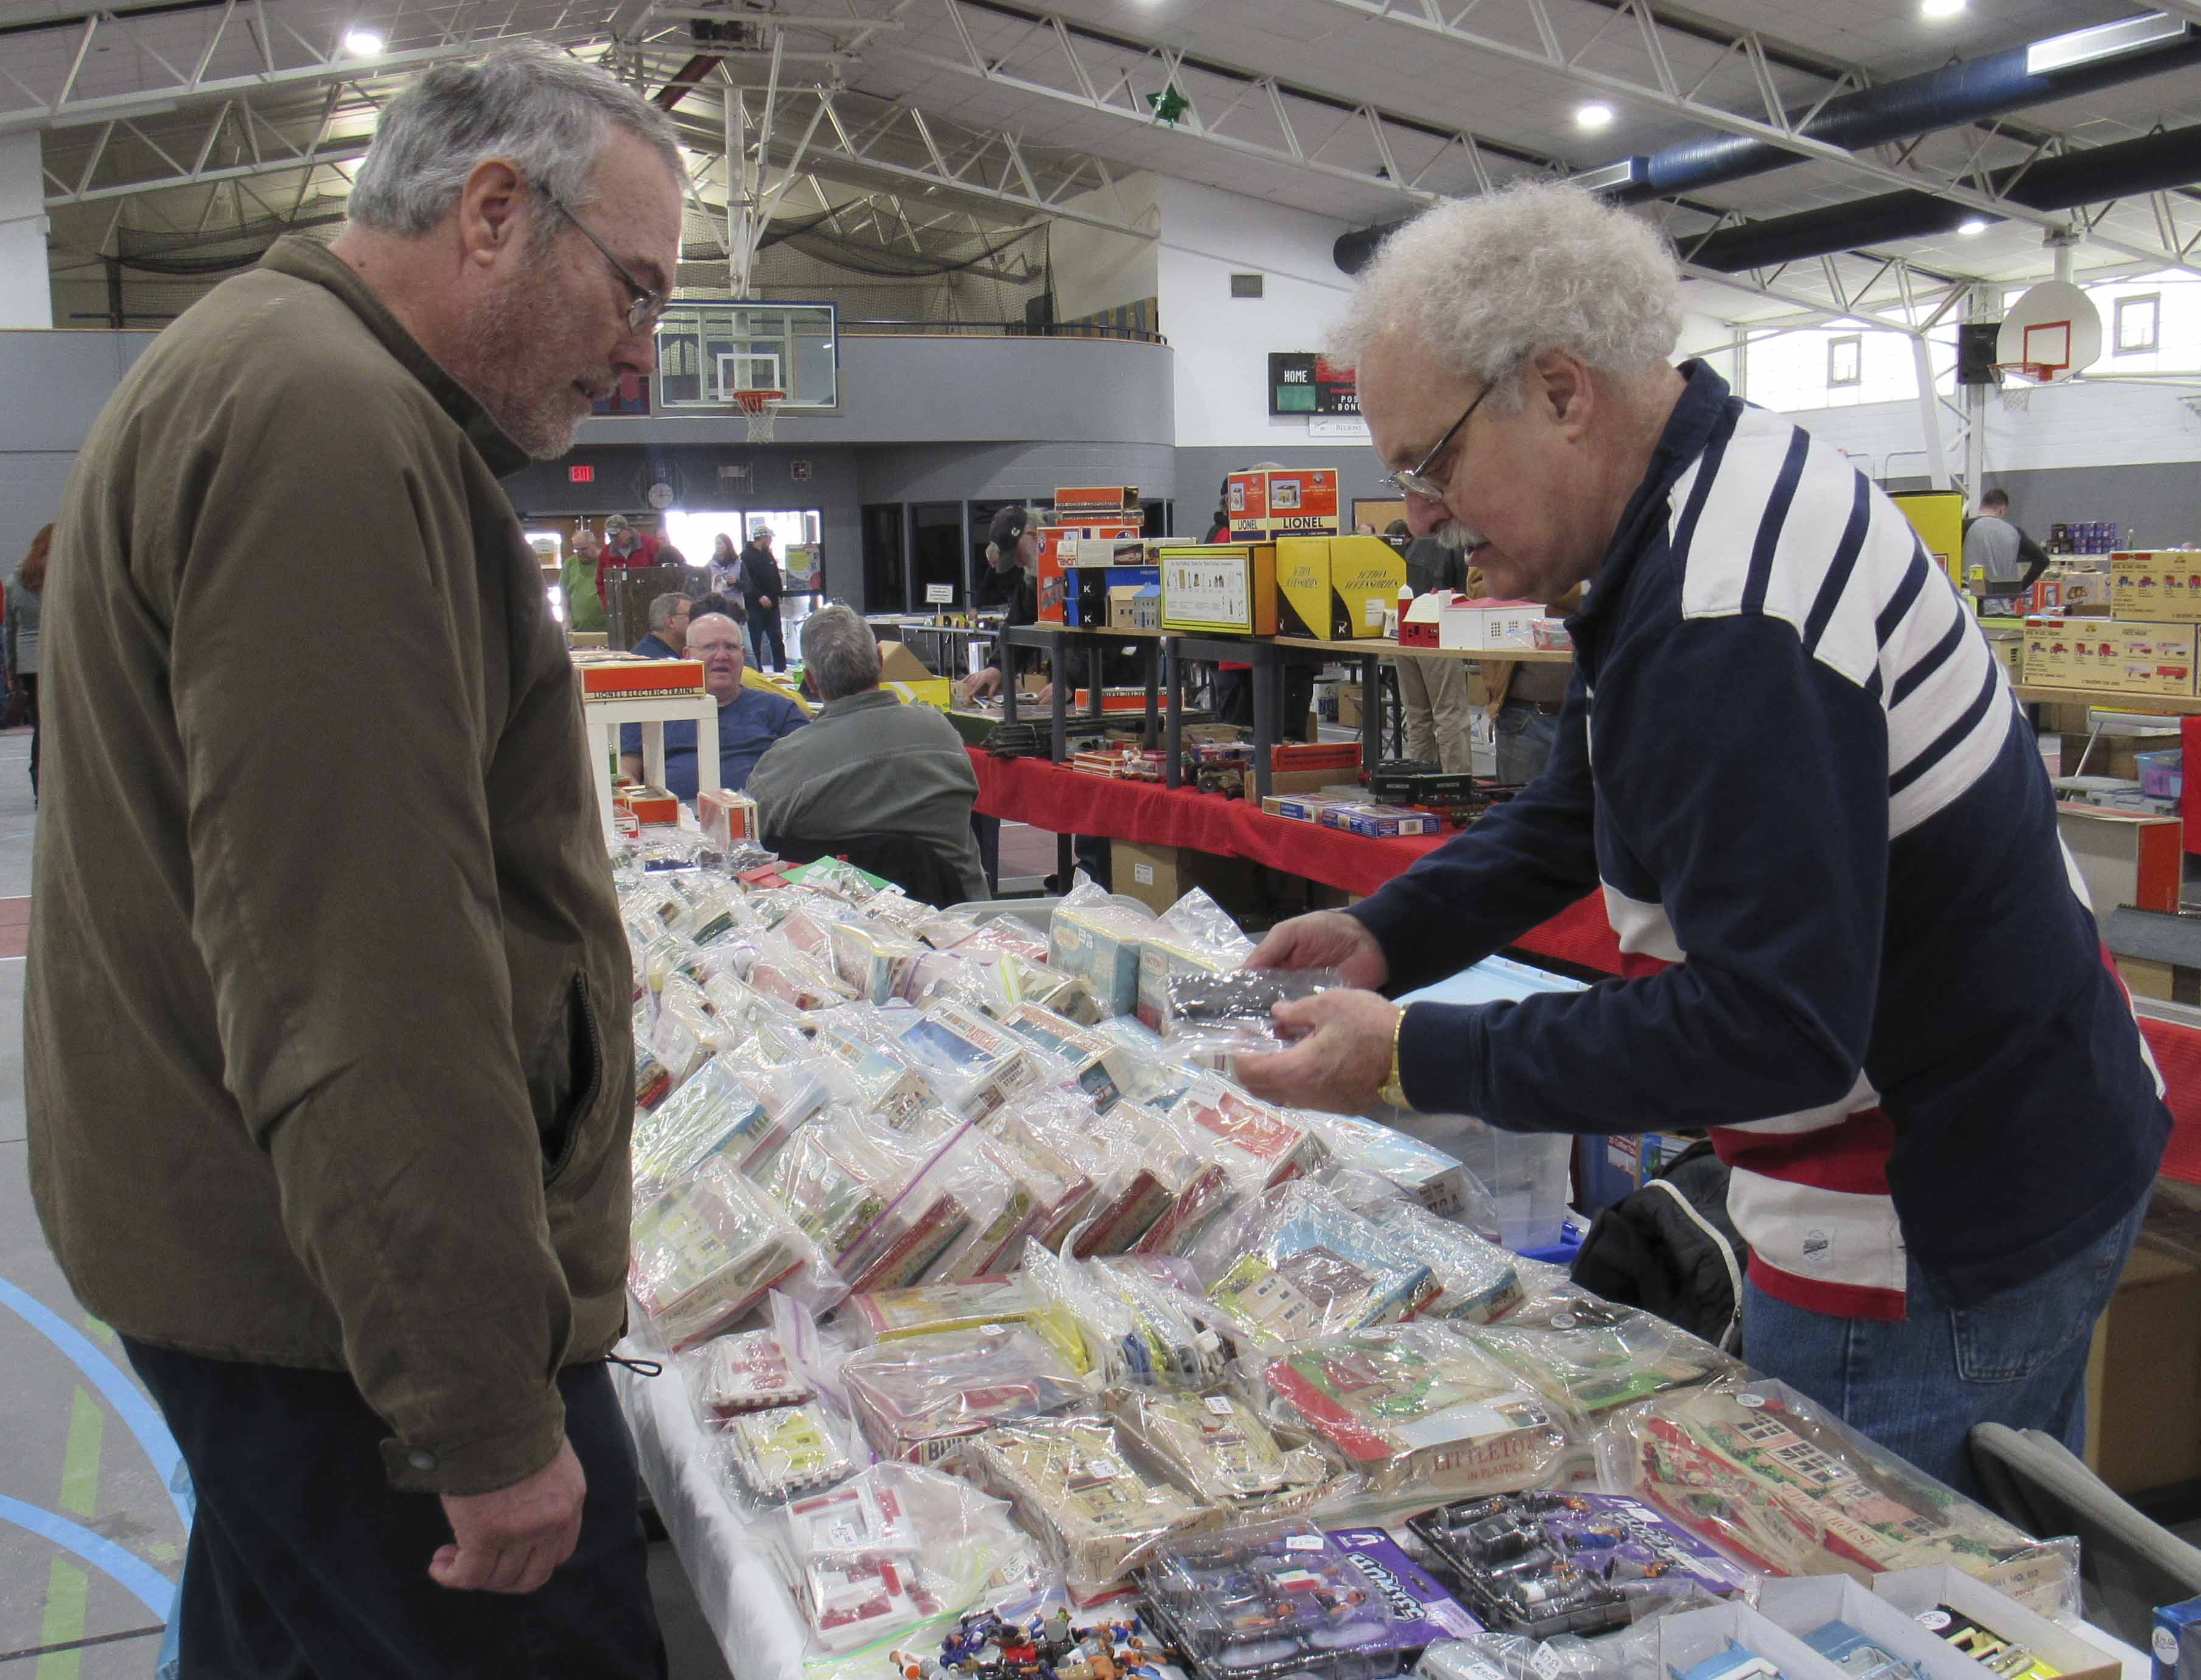 John Niehaus (right) of Ankeny showcases his Plasticville Collectors Association sets. The plastic train village sets have been around since the mid-1940s. Wayne Vorwald of Farley reminisces about the pieces from his own childhood.